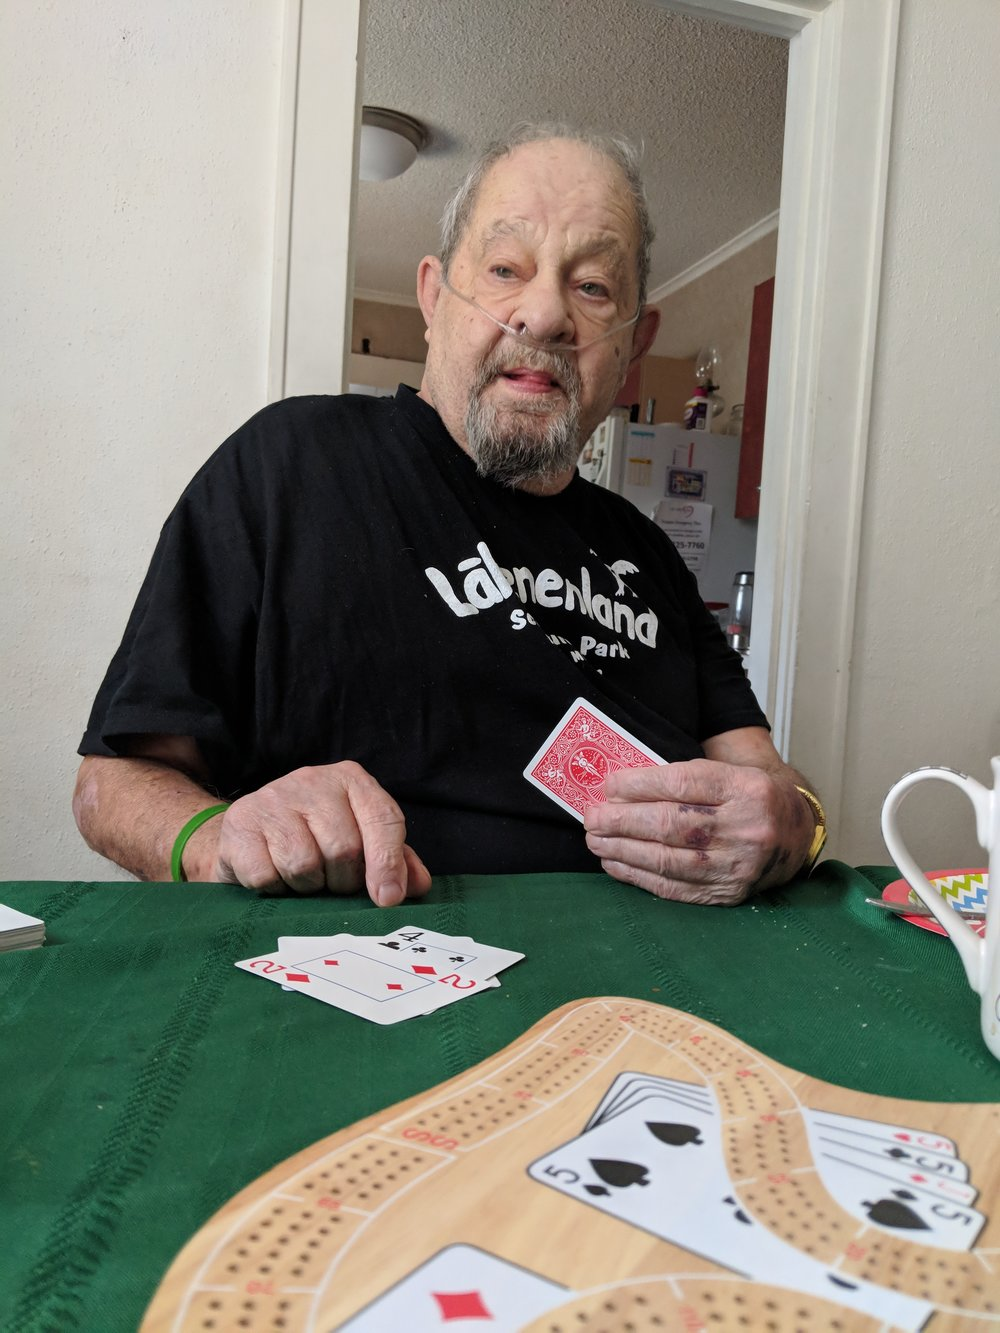 9. Cribbage - I visited my dad in October to go hunting. See this post about that trip. We got in a game of cribbage which is always important.. Edit. My father passed away the day after I wrote this. This would be our last game of Cribbage.